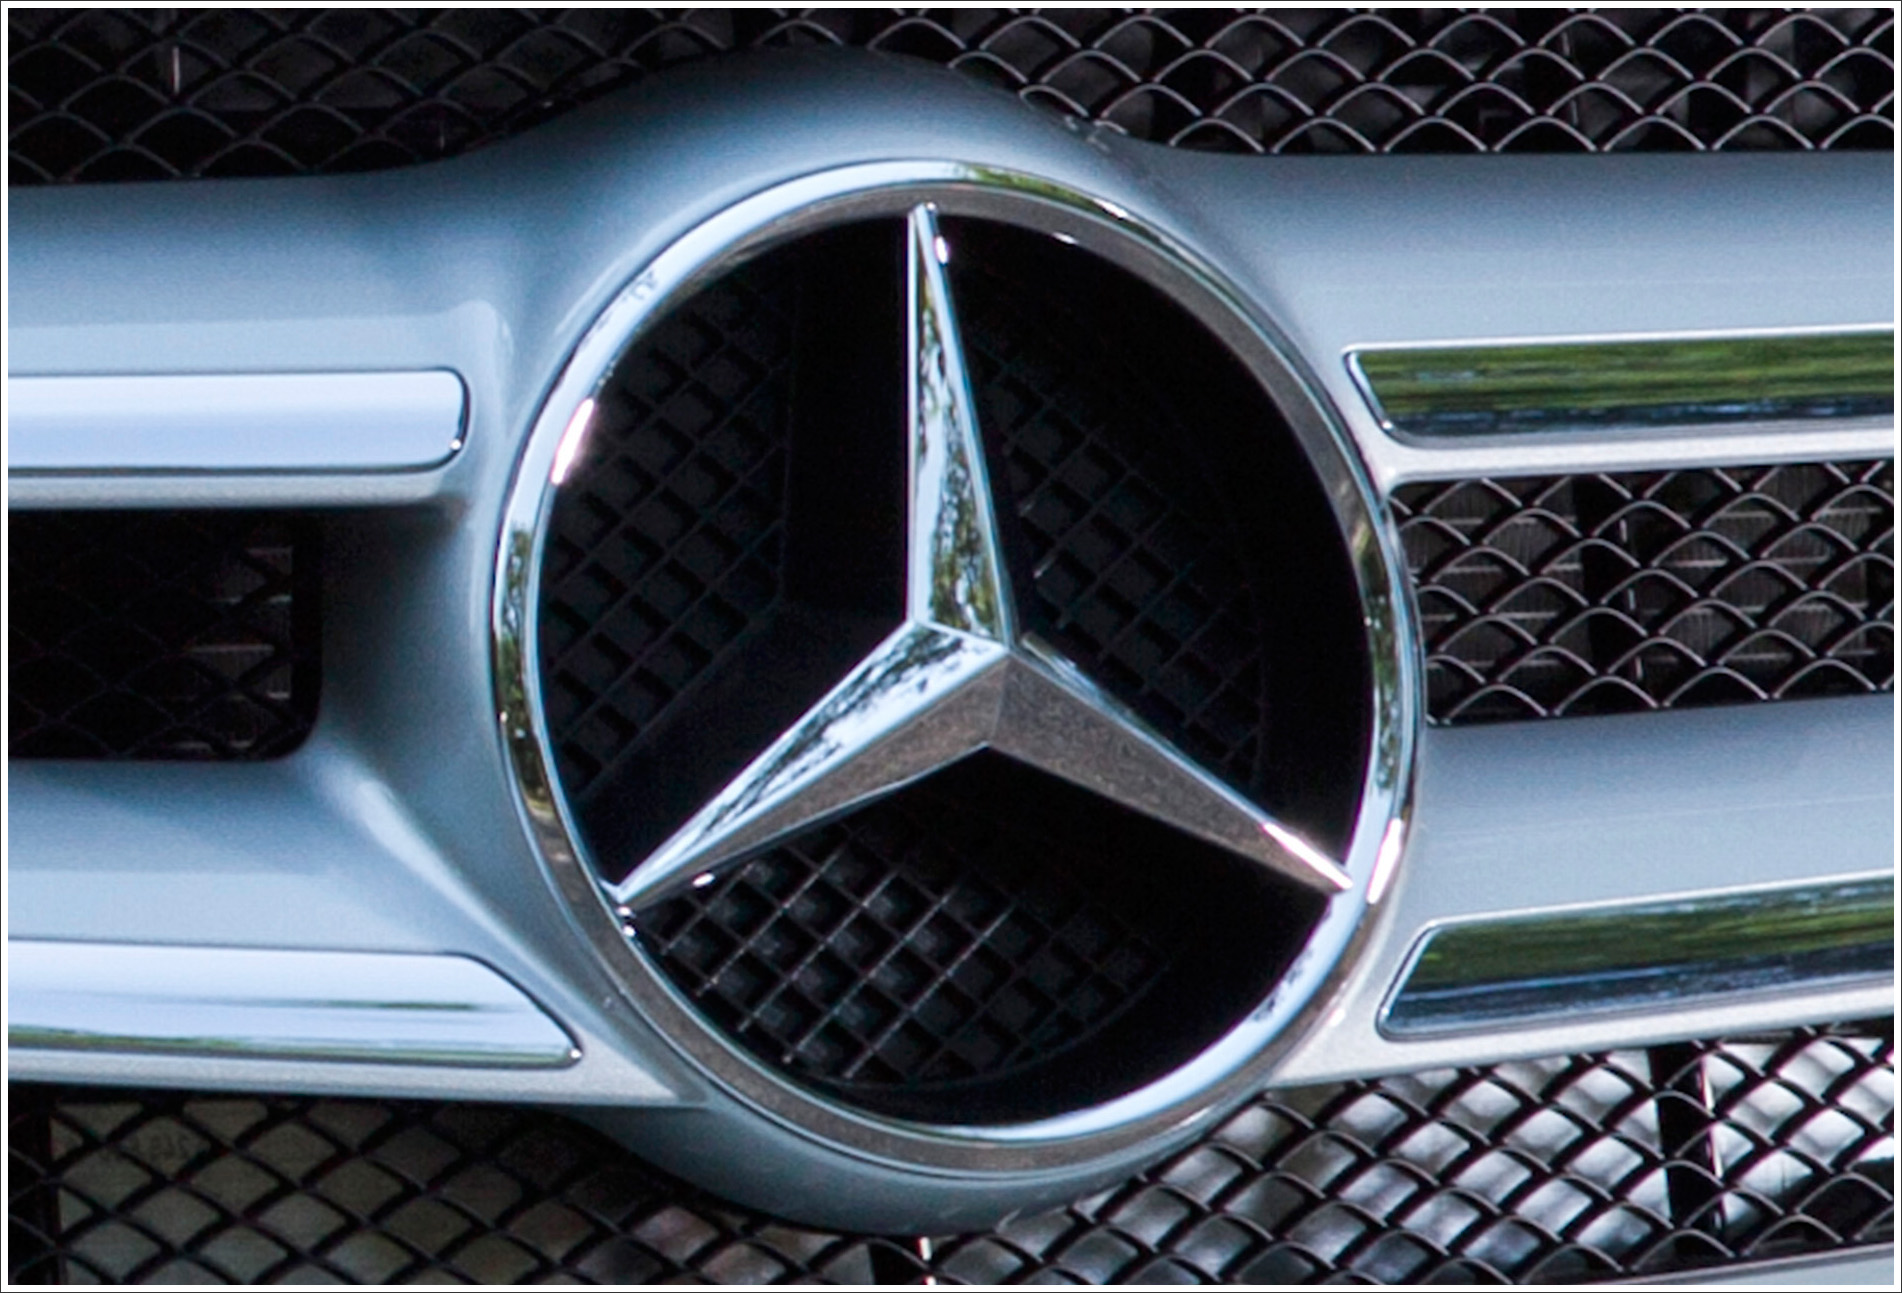 Mercedes benz logo meaning and history latest models world cars mercedes benz logo biocorpaavc Image collections